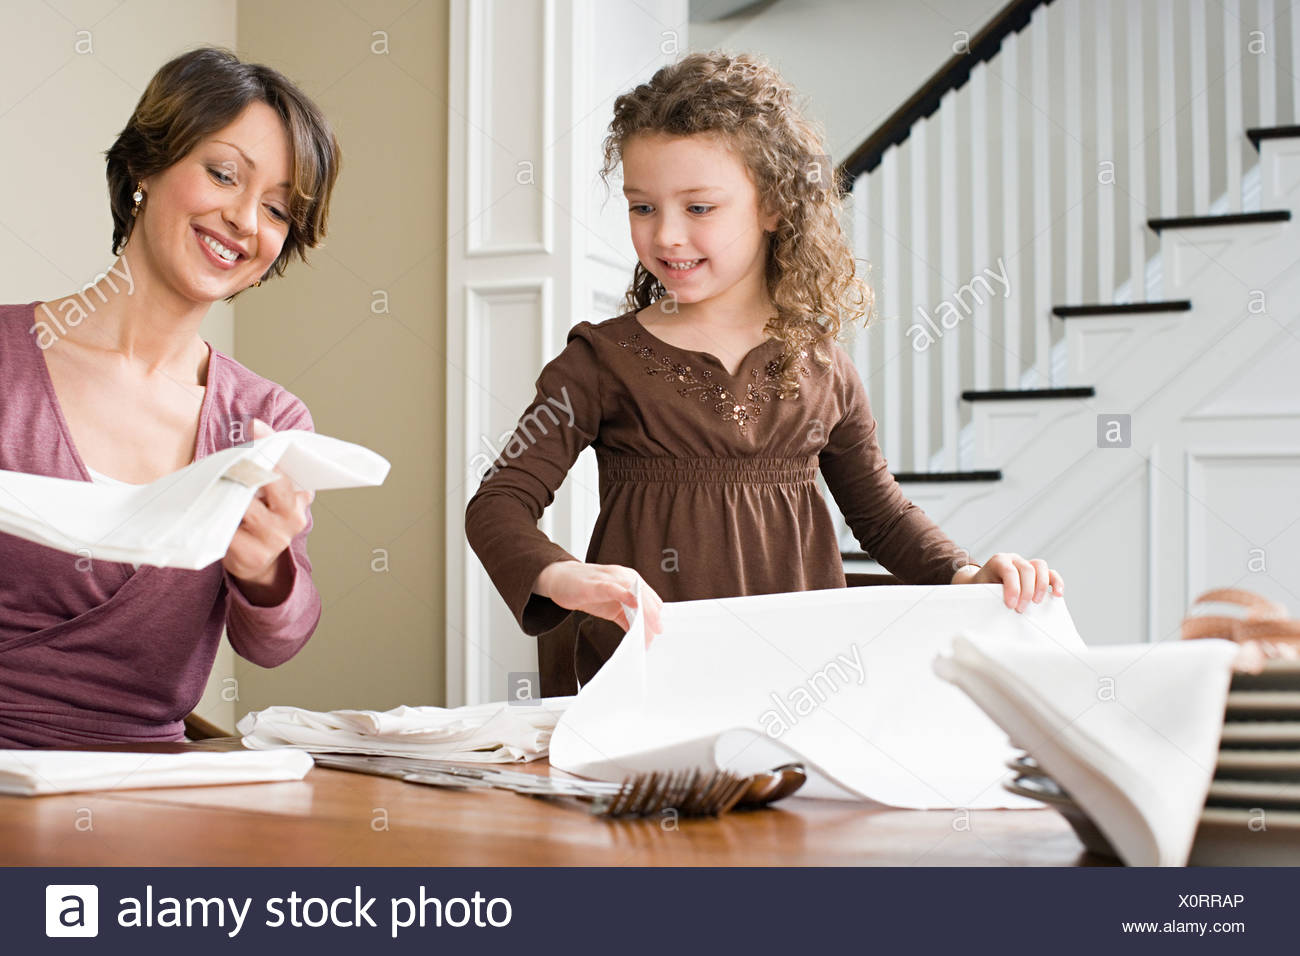 Mother and daughter folding napkins - Stock Image